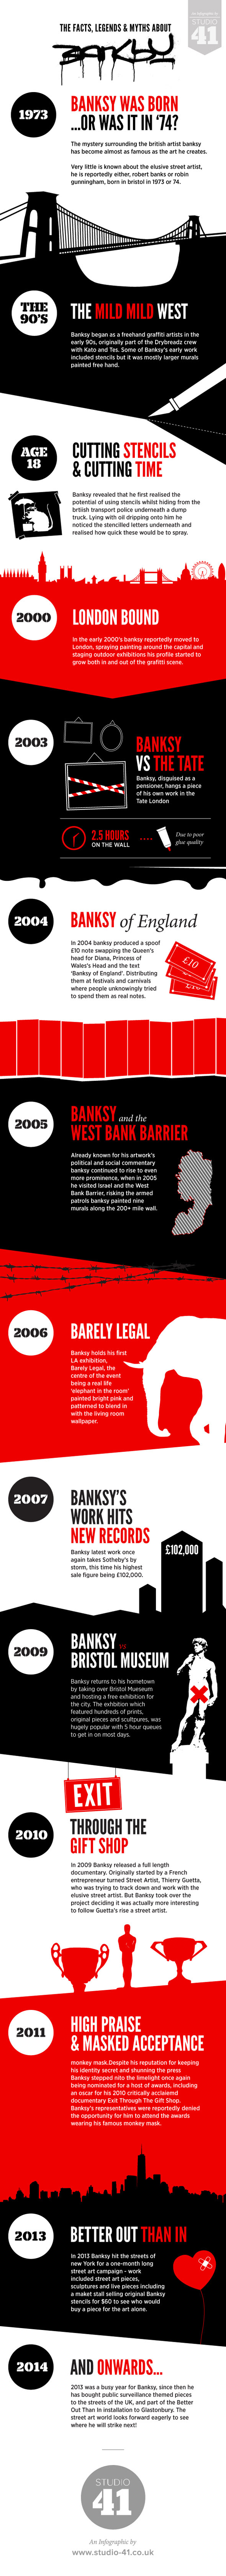 Infographic: The Facts, Legends and Myths About Banksy #infographic